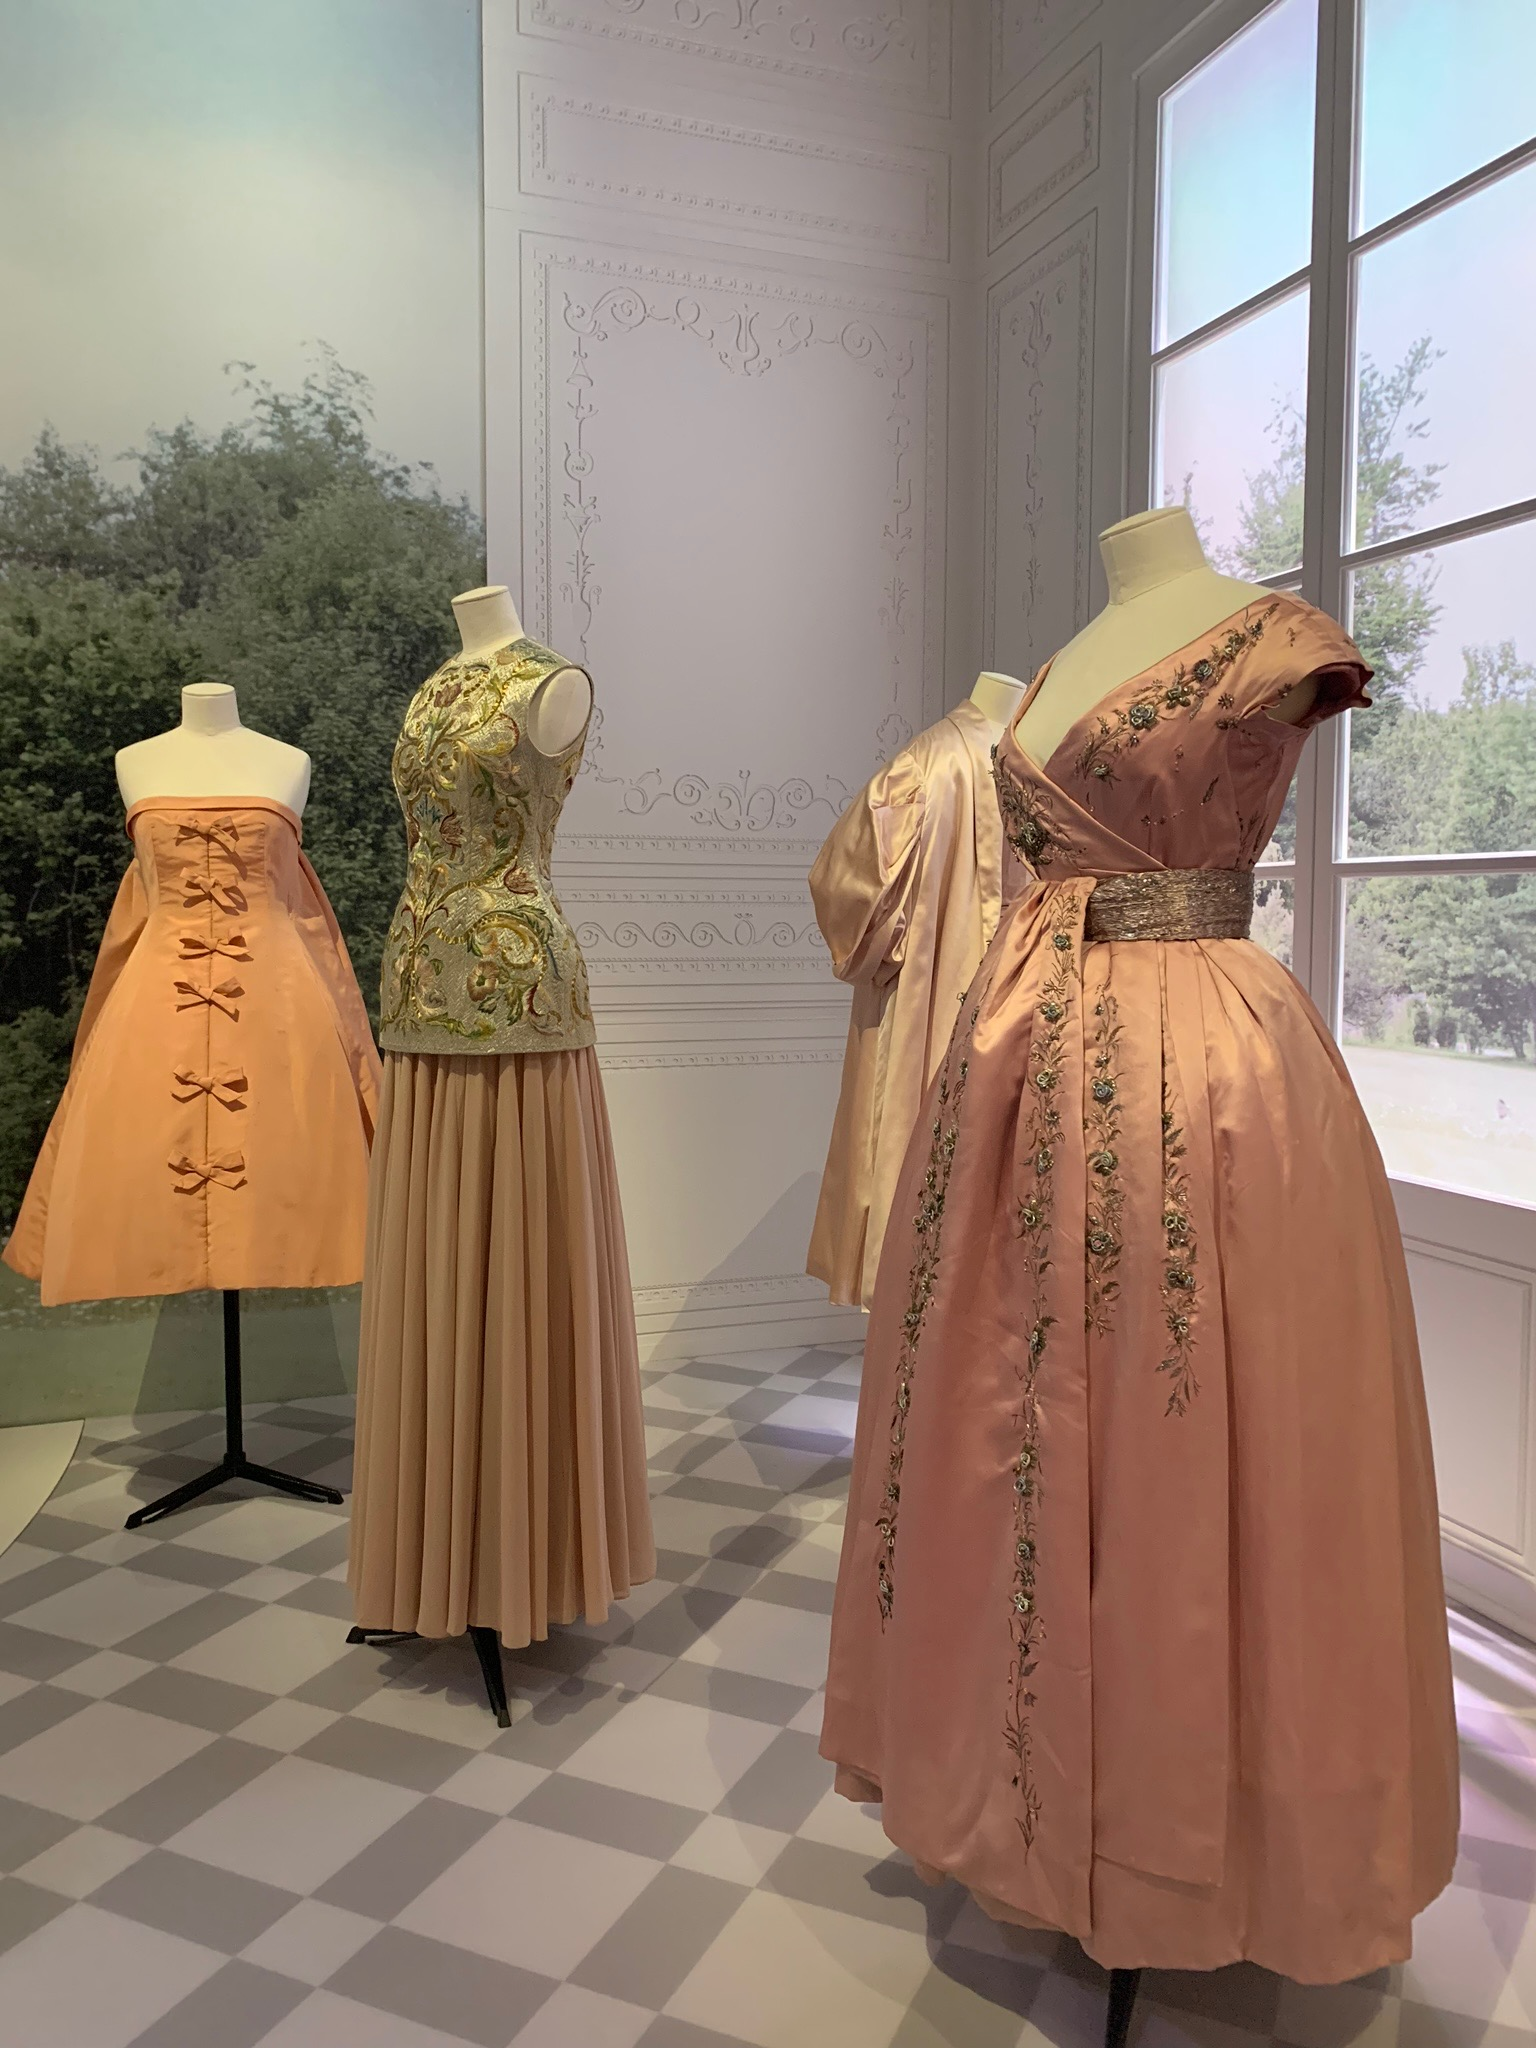 embroidered dior gowns.jpg